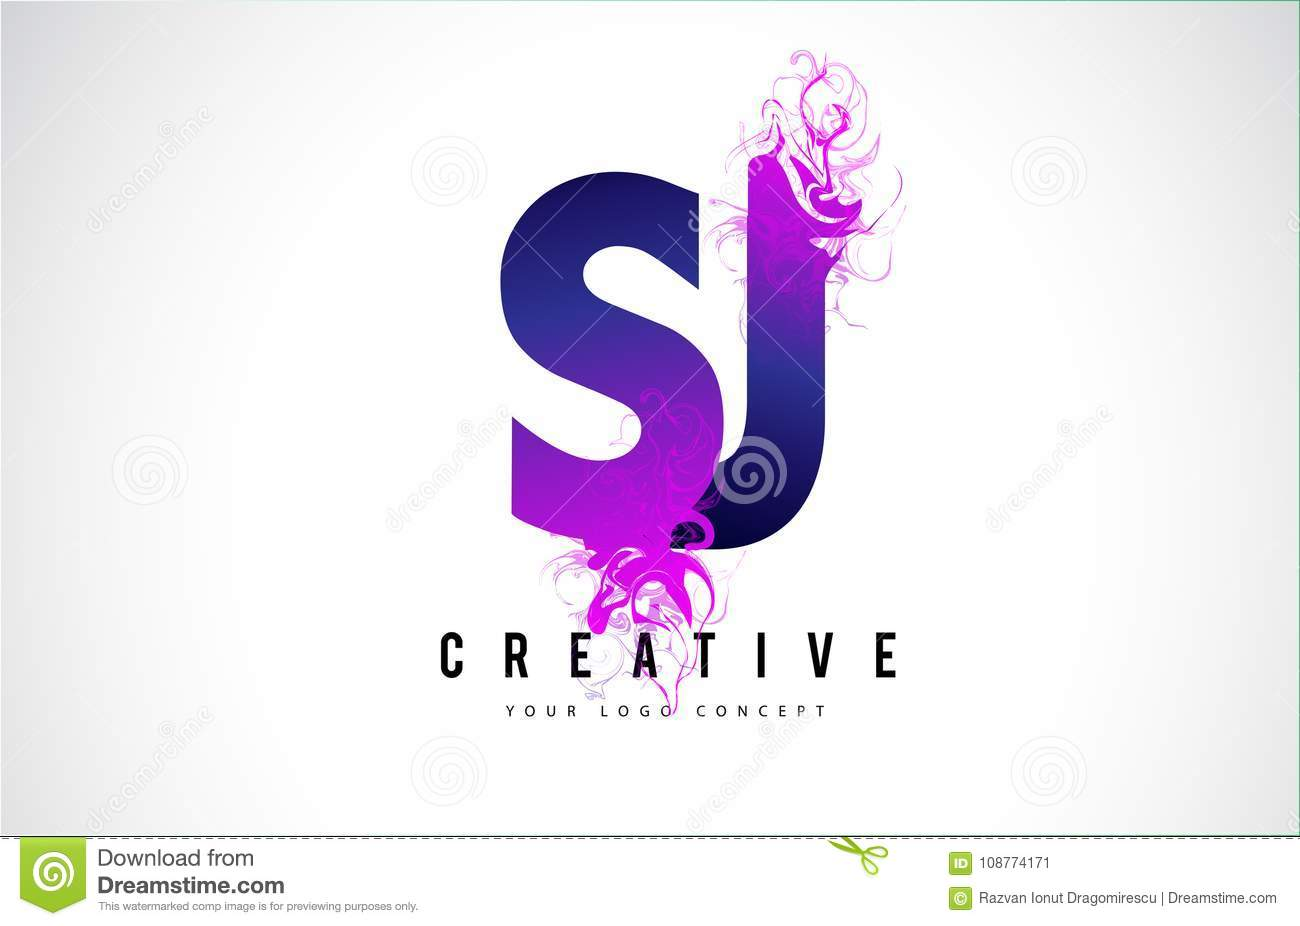 Sj S J Purple Letter Logo Design With Creative Liquid Effect Flowing Vector Illustration